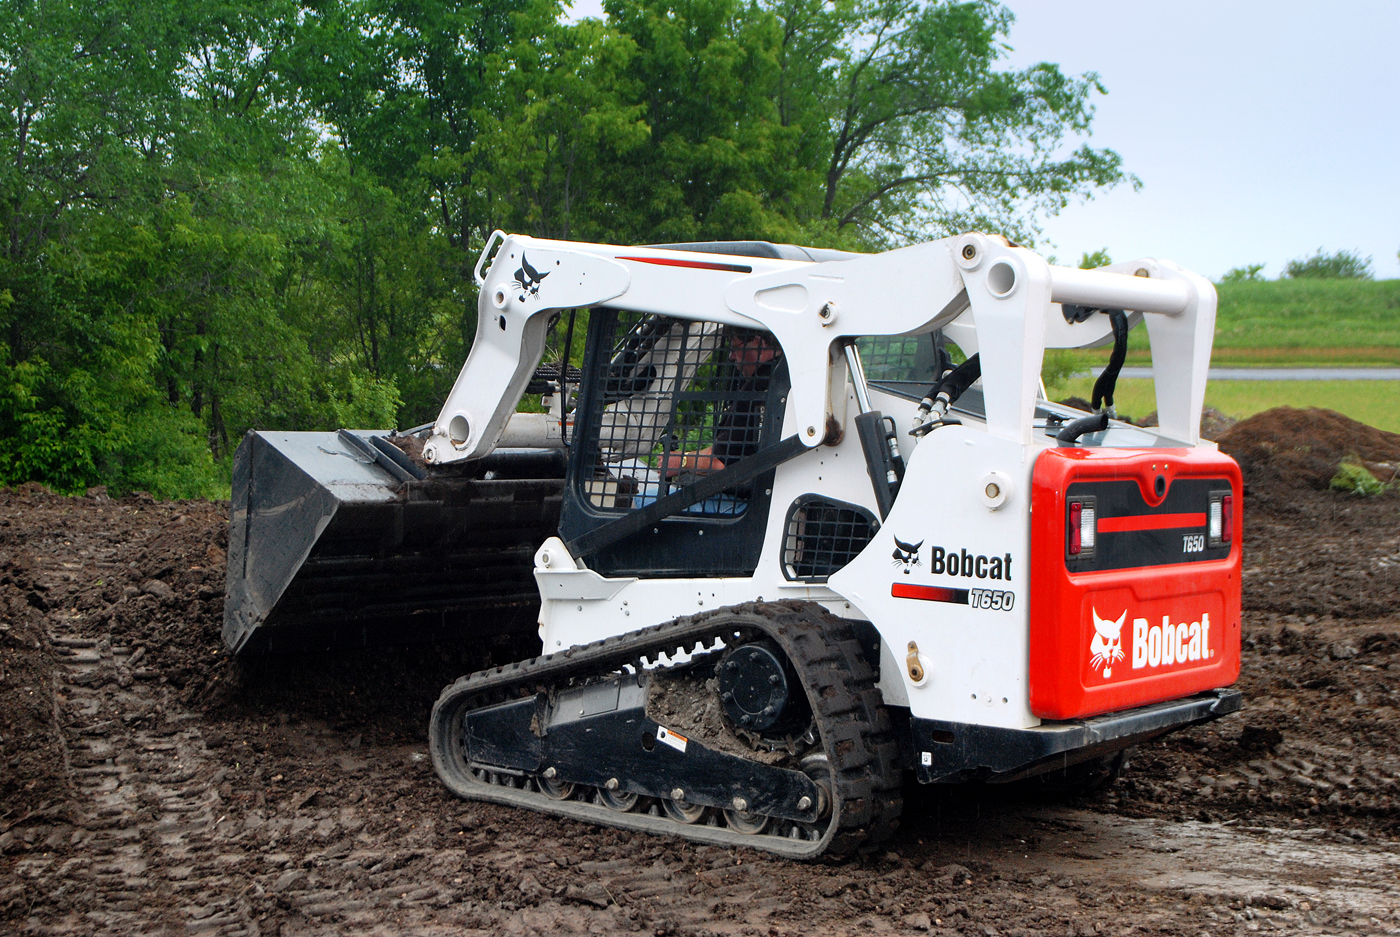 Bobcat Rentals A Motorized Swiss Army Knife Eagle Rentals